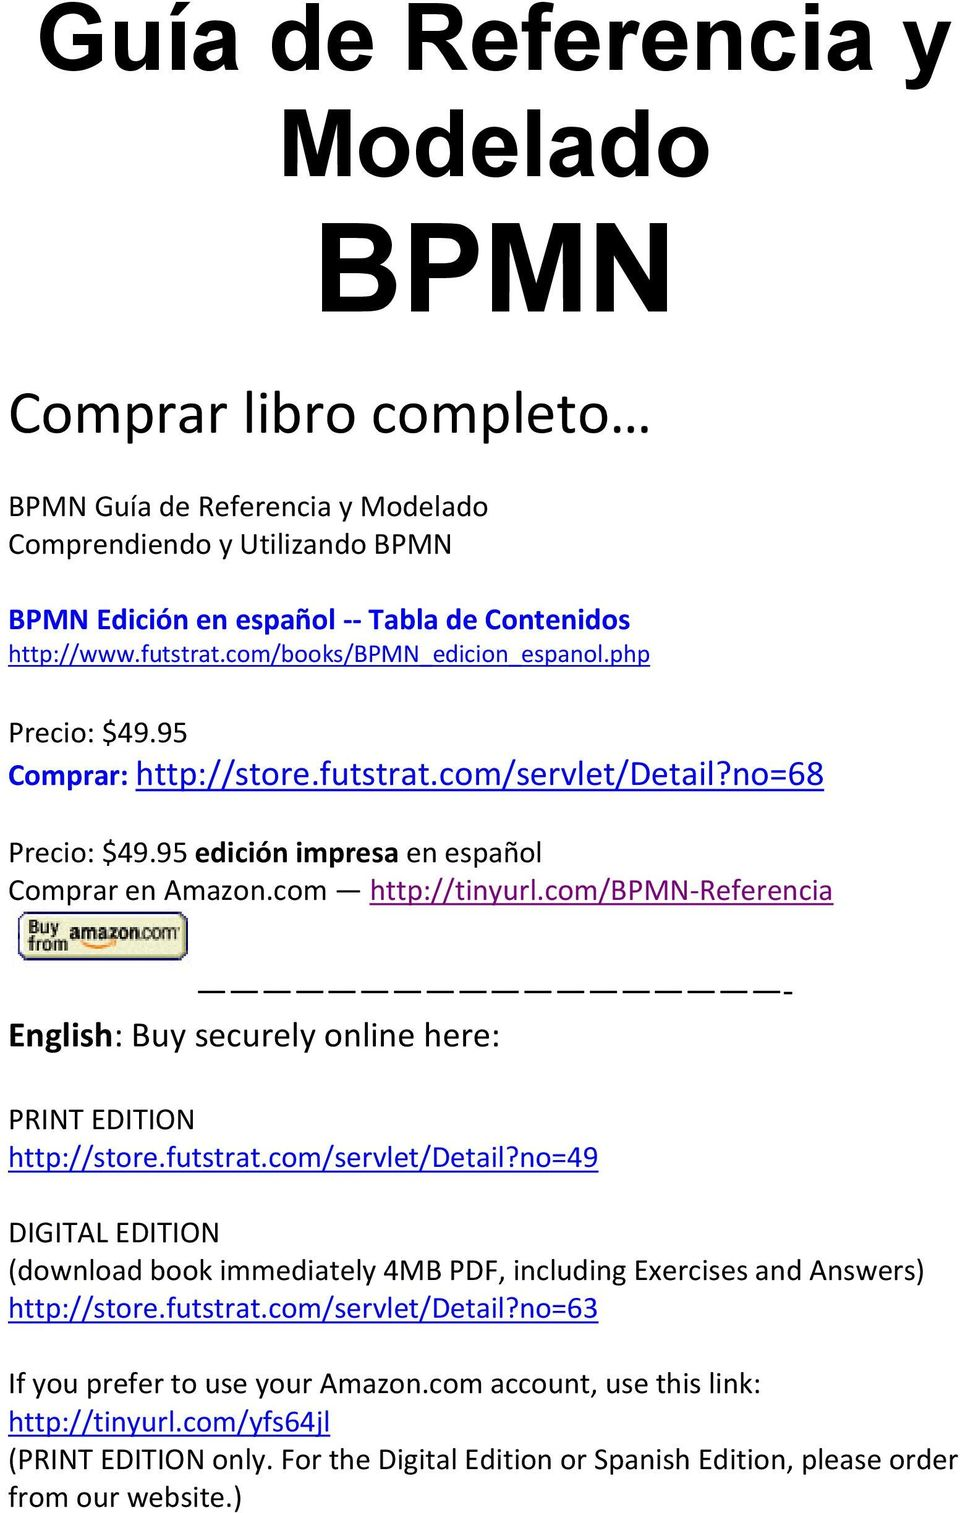 com/bpmn-referencia - English: Buy securely online here: PRINT EDITION http://store.futstrat.com/servlet/detail?